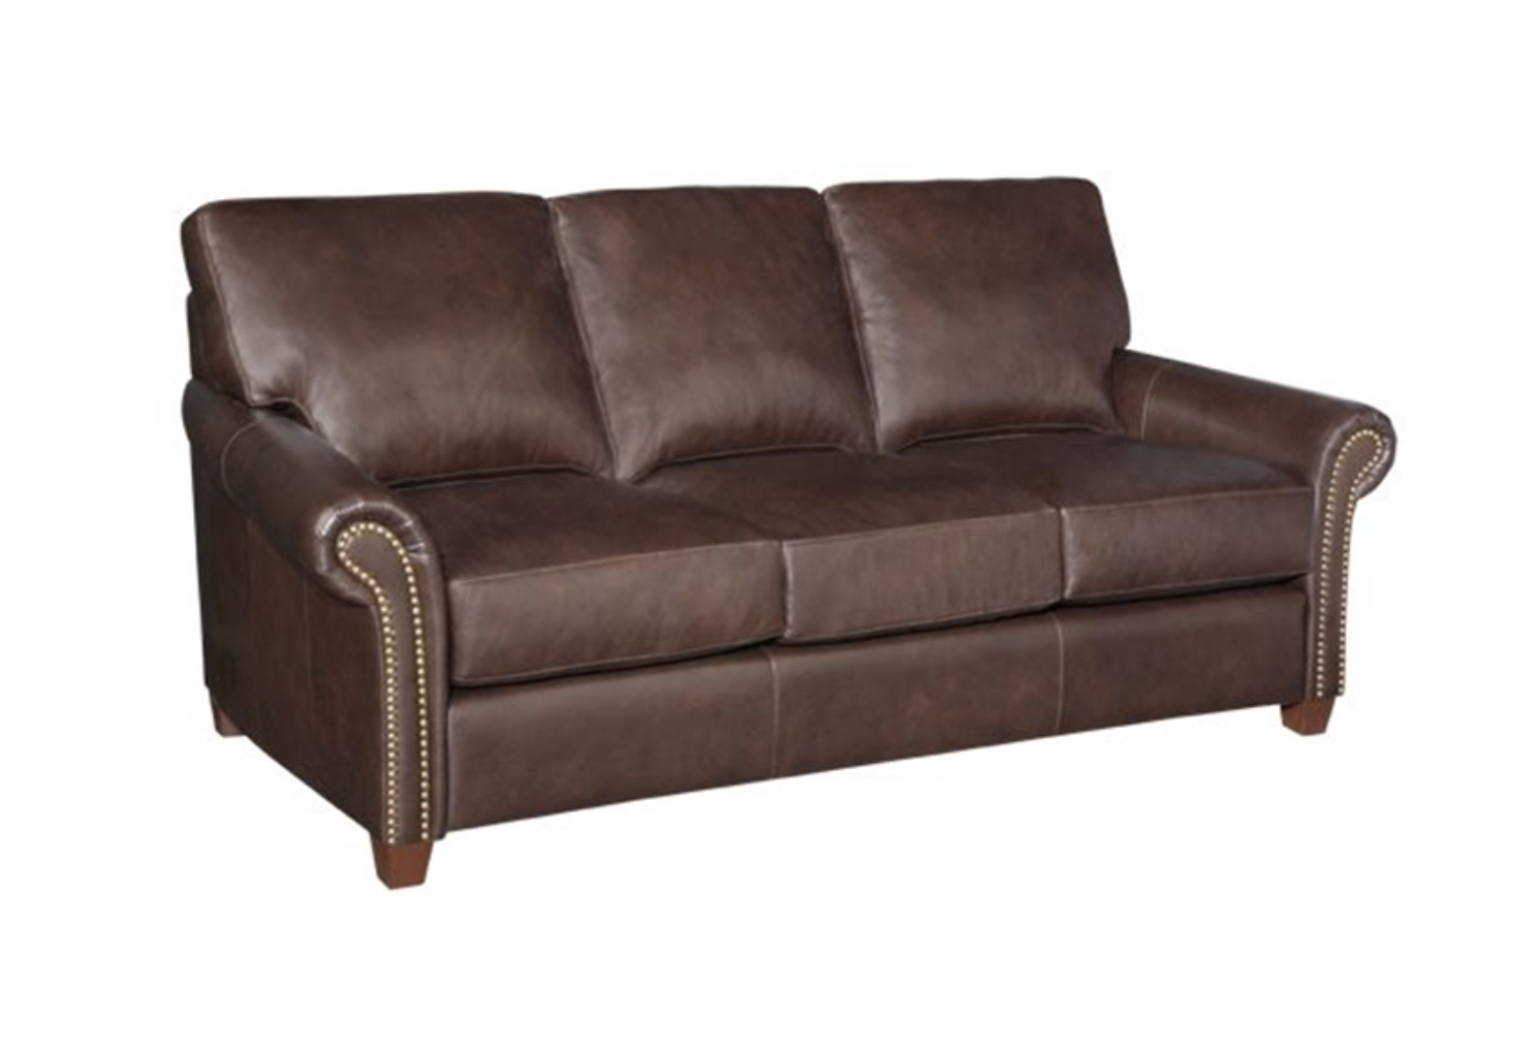 best quality leather sofa bed oversized recliner baci living room